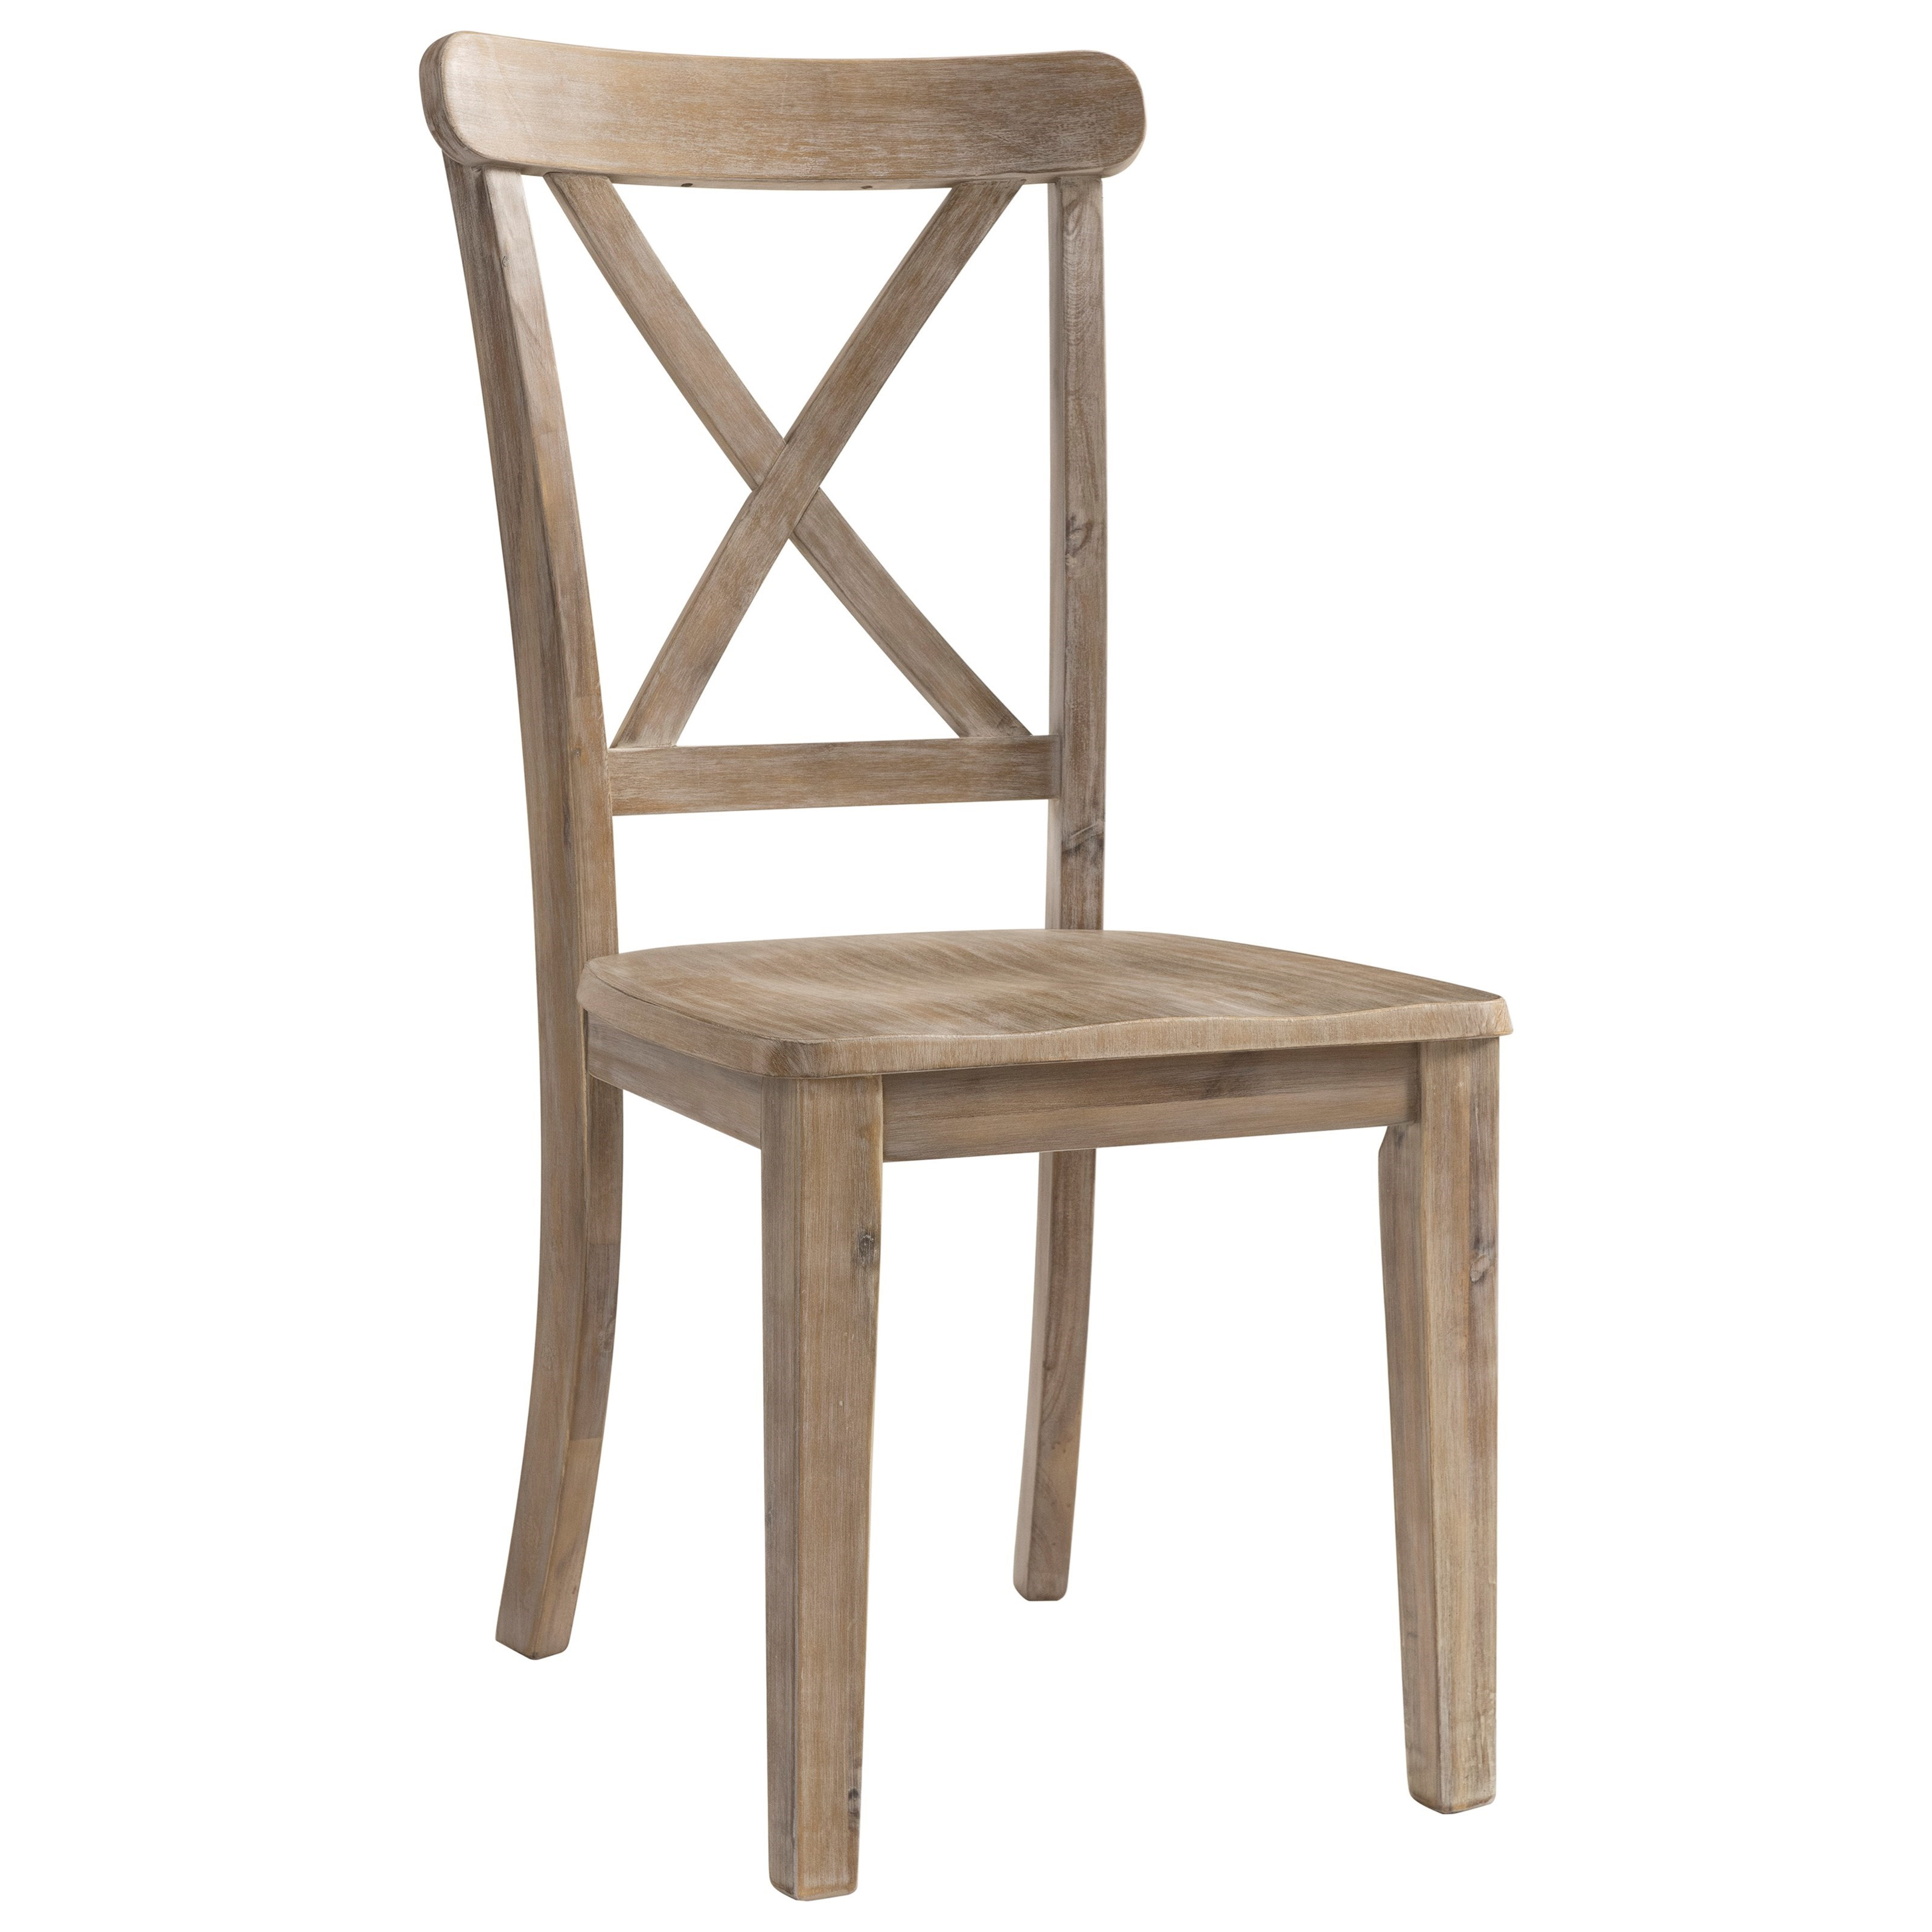 Ambrosh Dining Side Chair by Ashley Furniture at HomeWorld Furniture